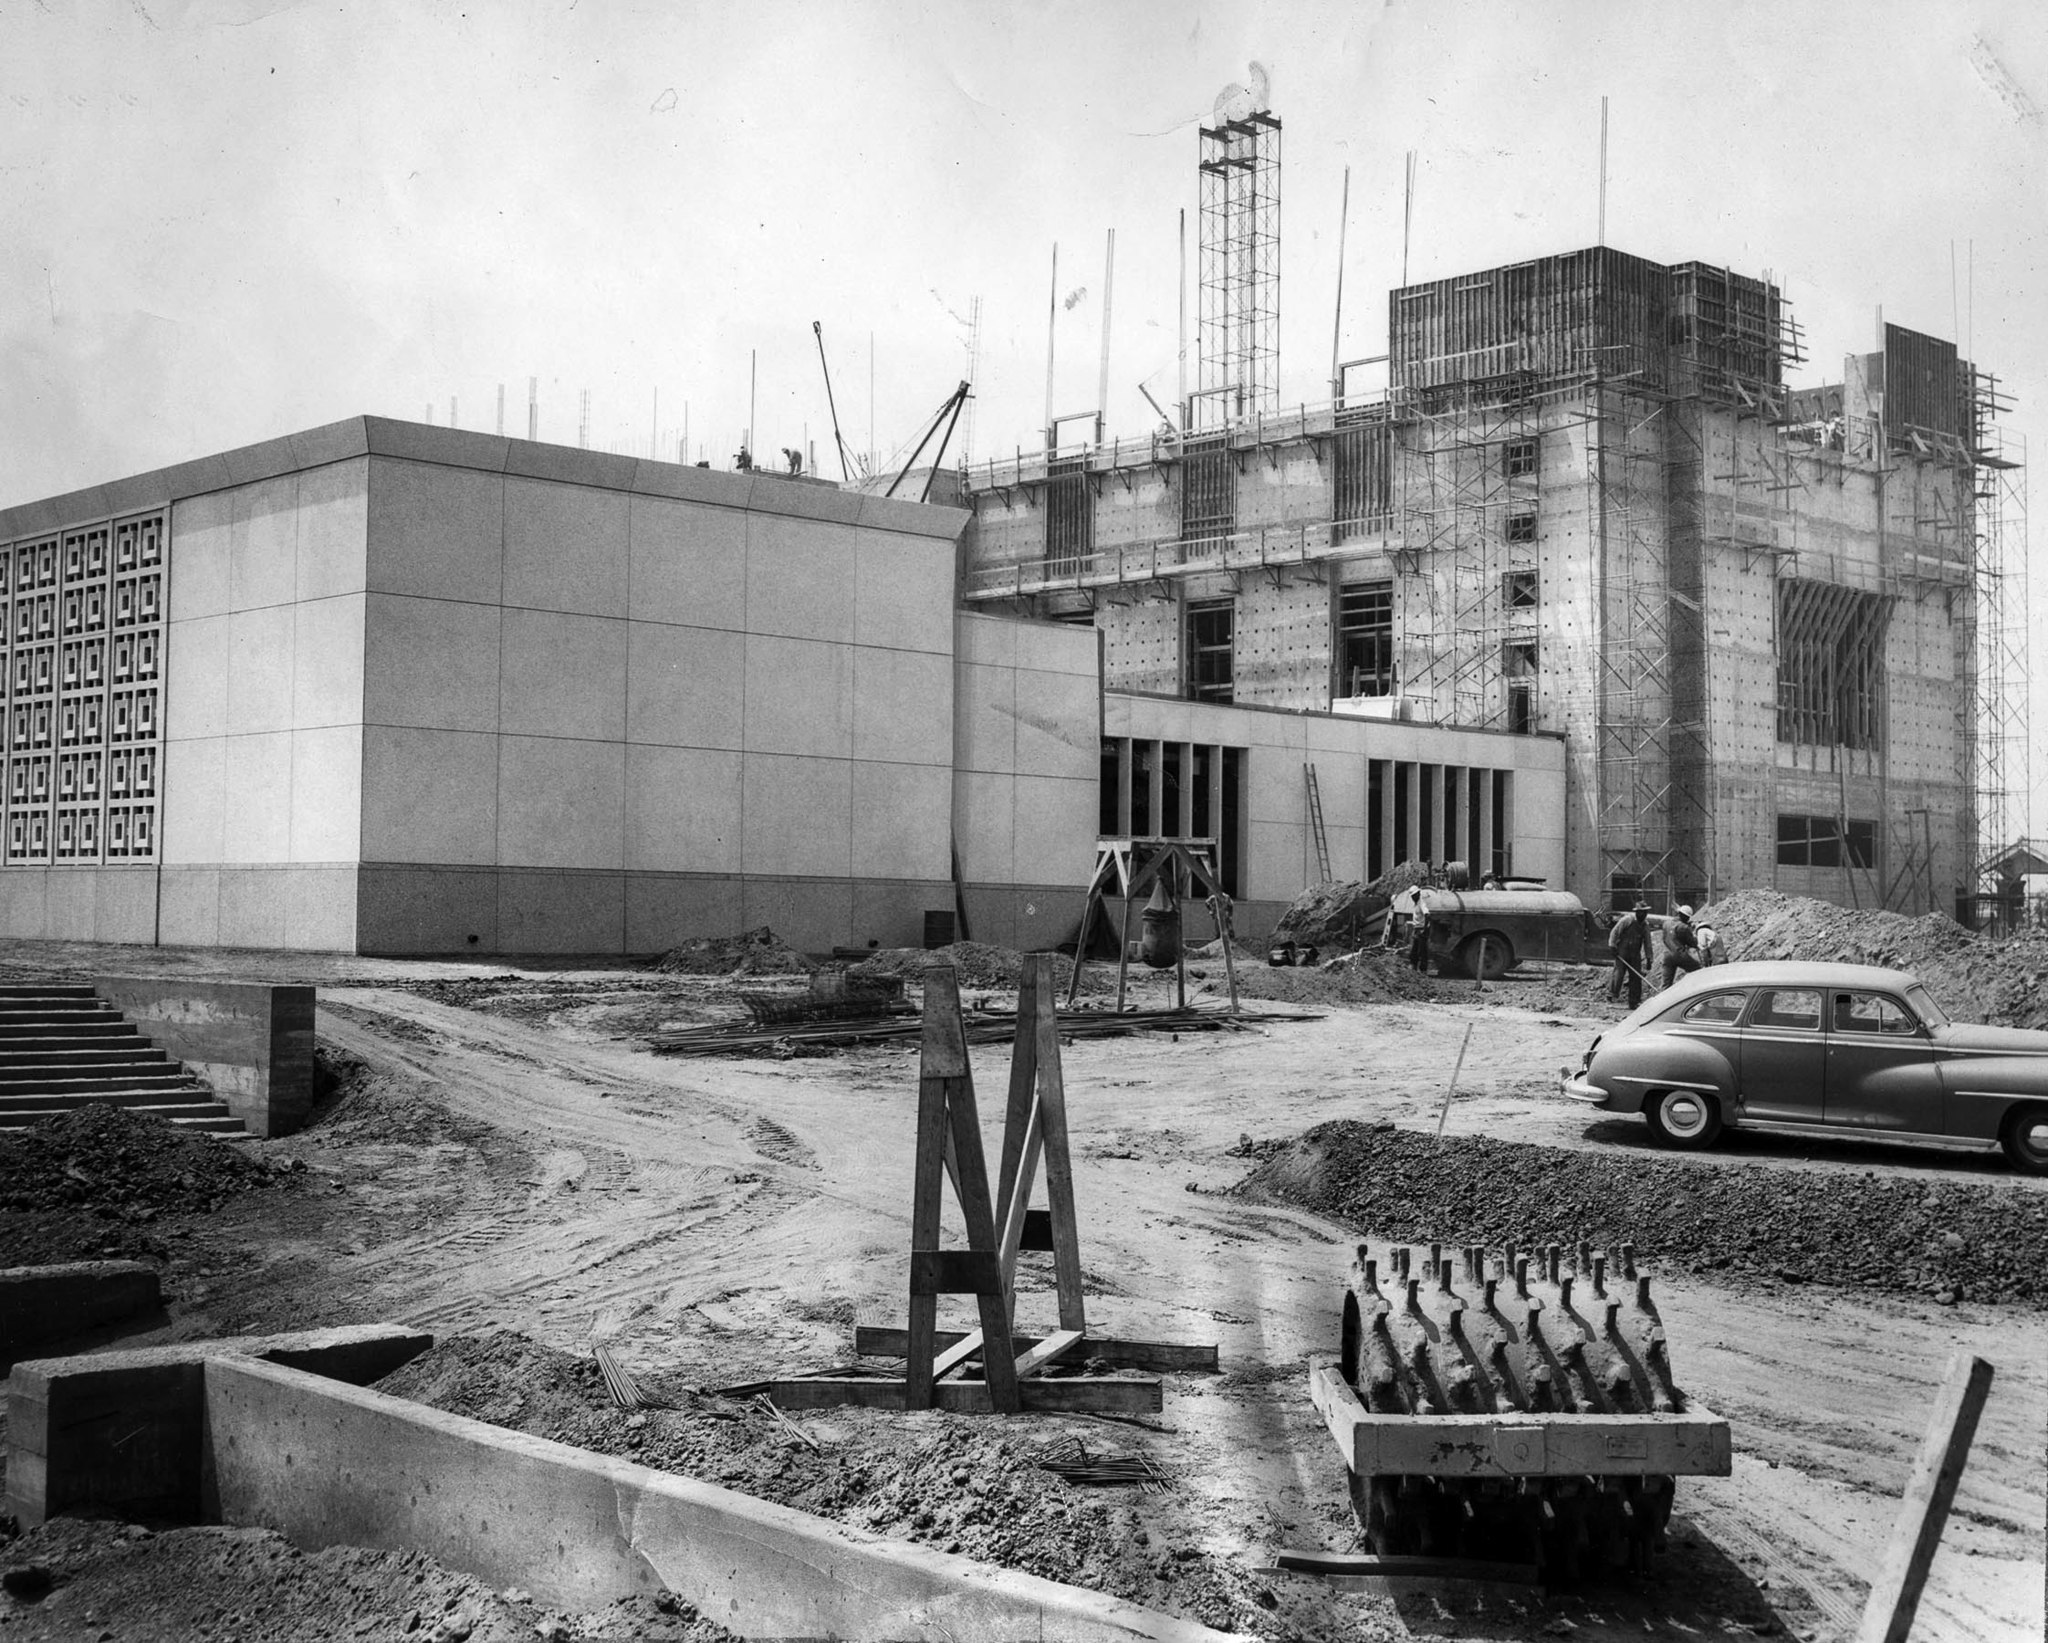 Aug. 14, 1953: East wing of Mormon Temple under construction on Santa Monica Blvd. at Selby Ave. Wor